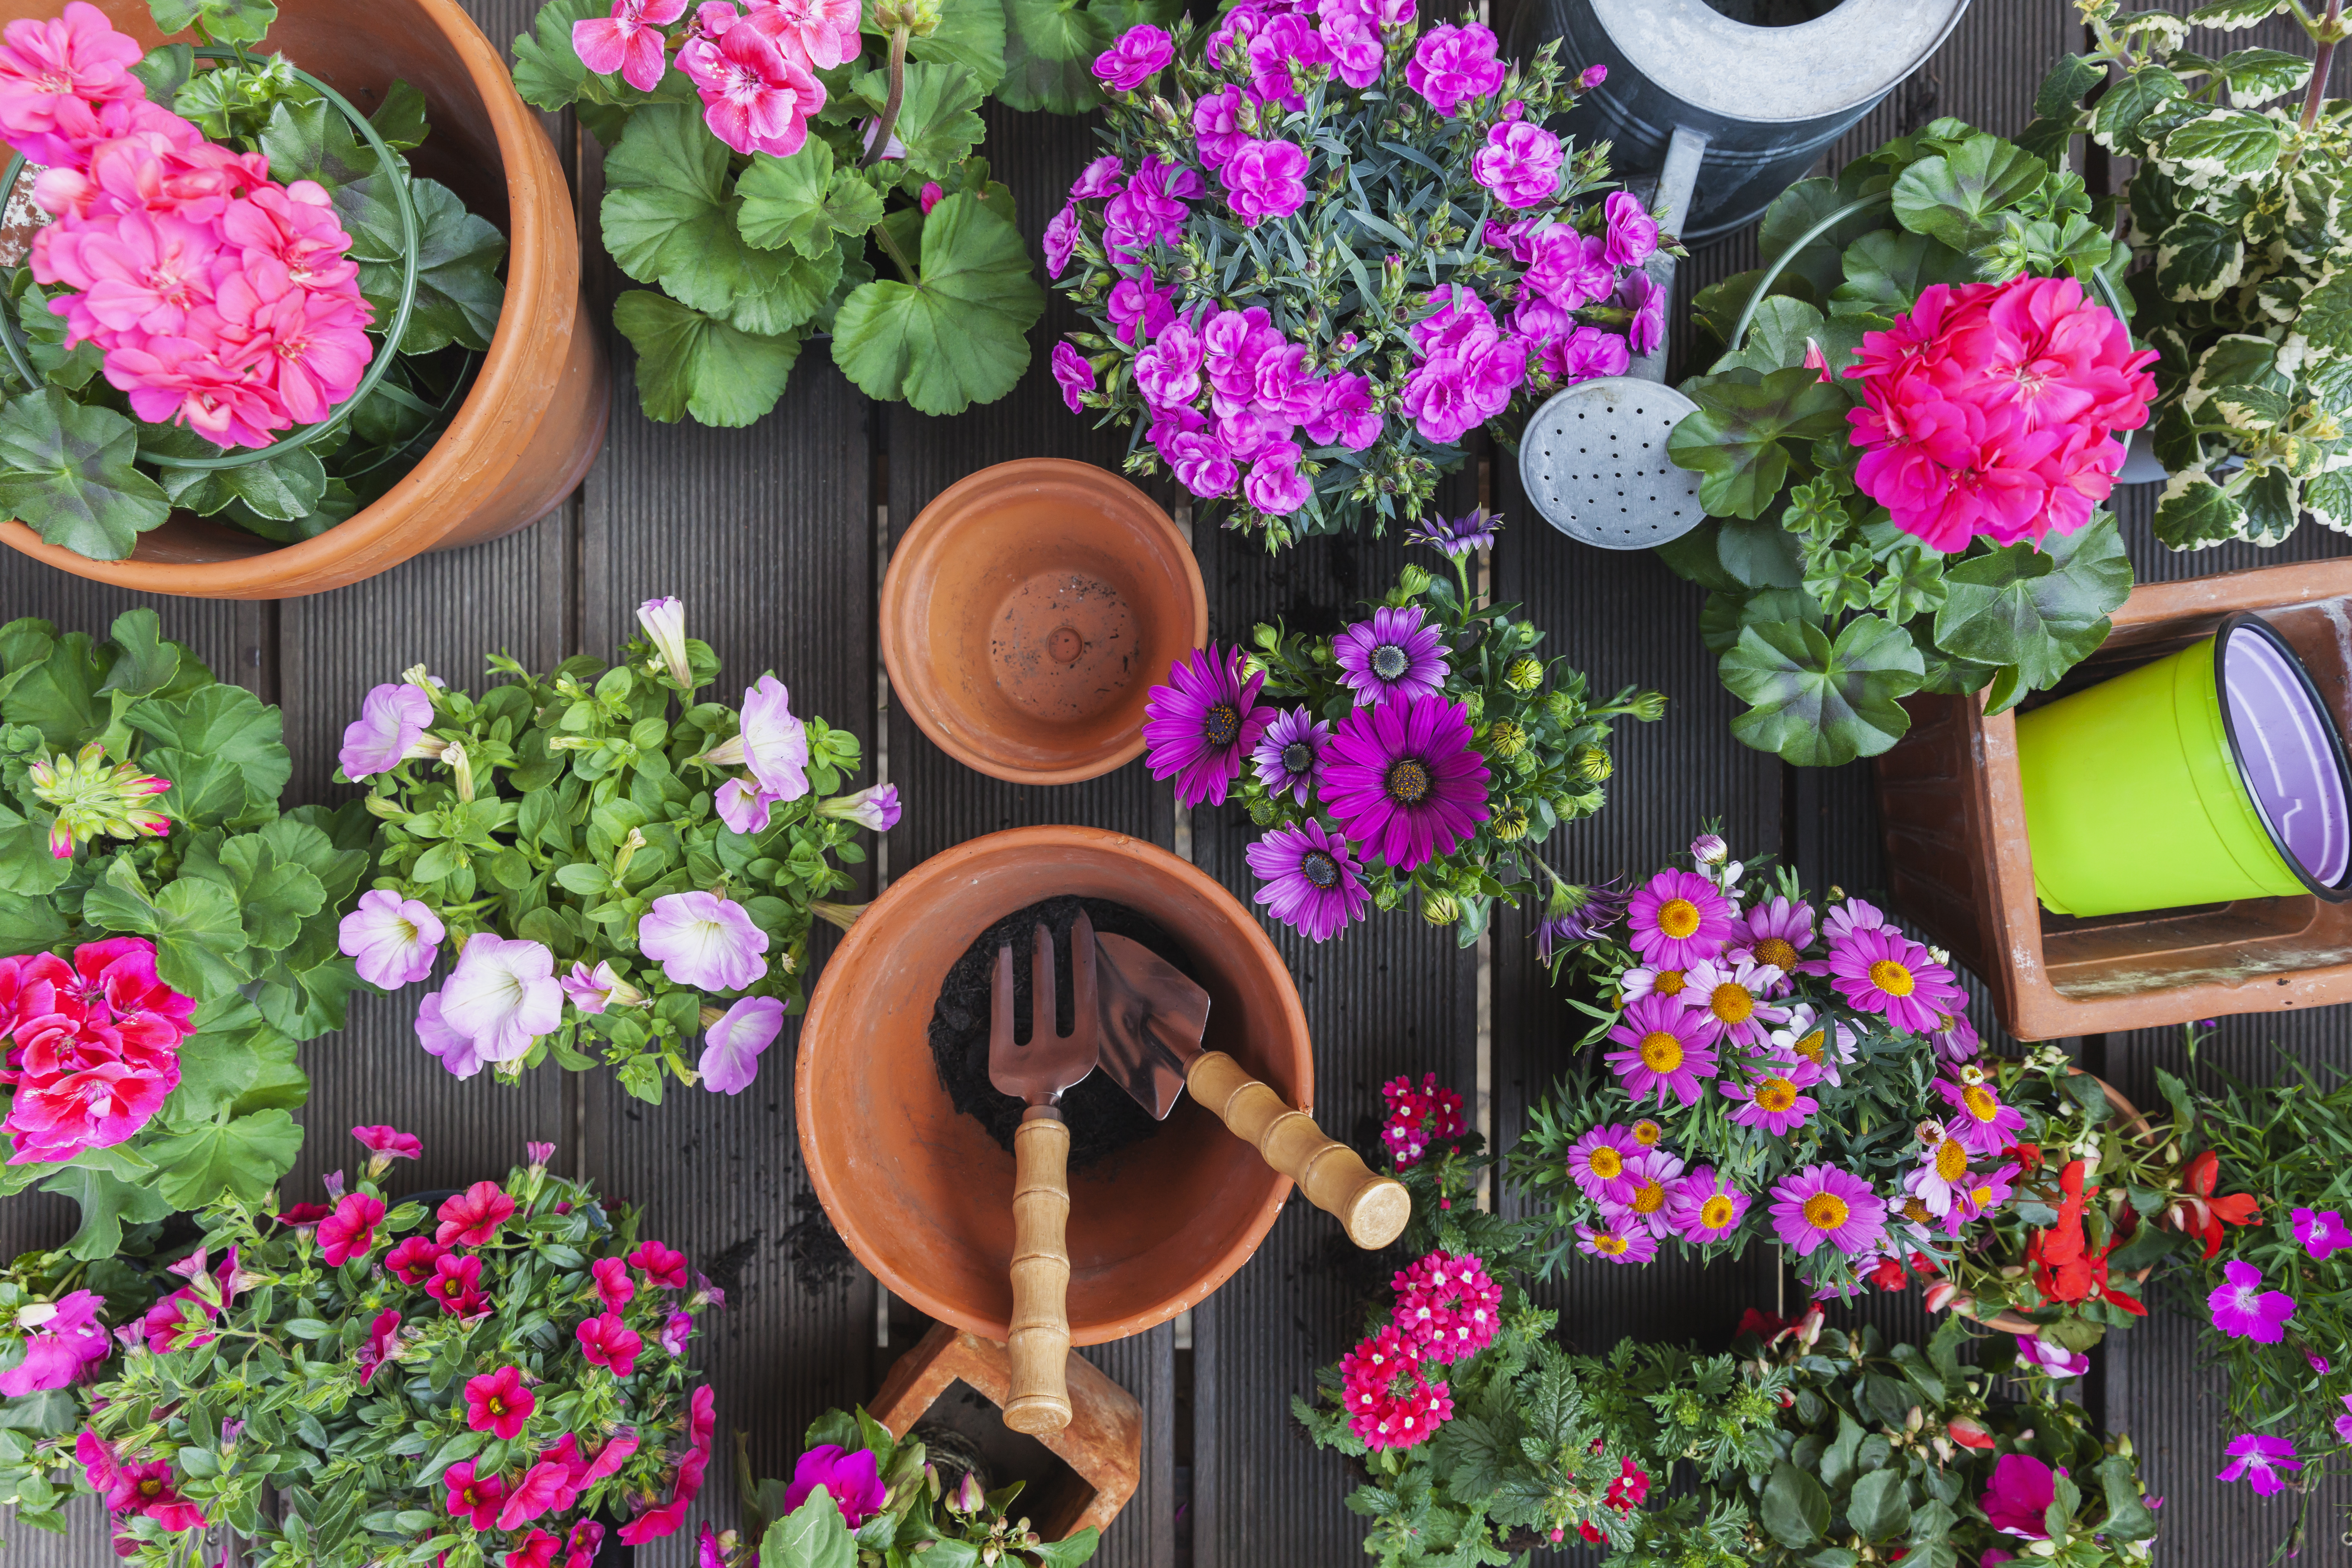 How to Make Holes in Flower Pots for Water to Run Out & How to Make Holes in Flower Pots for Water to Run Out | Home Guides ...